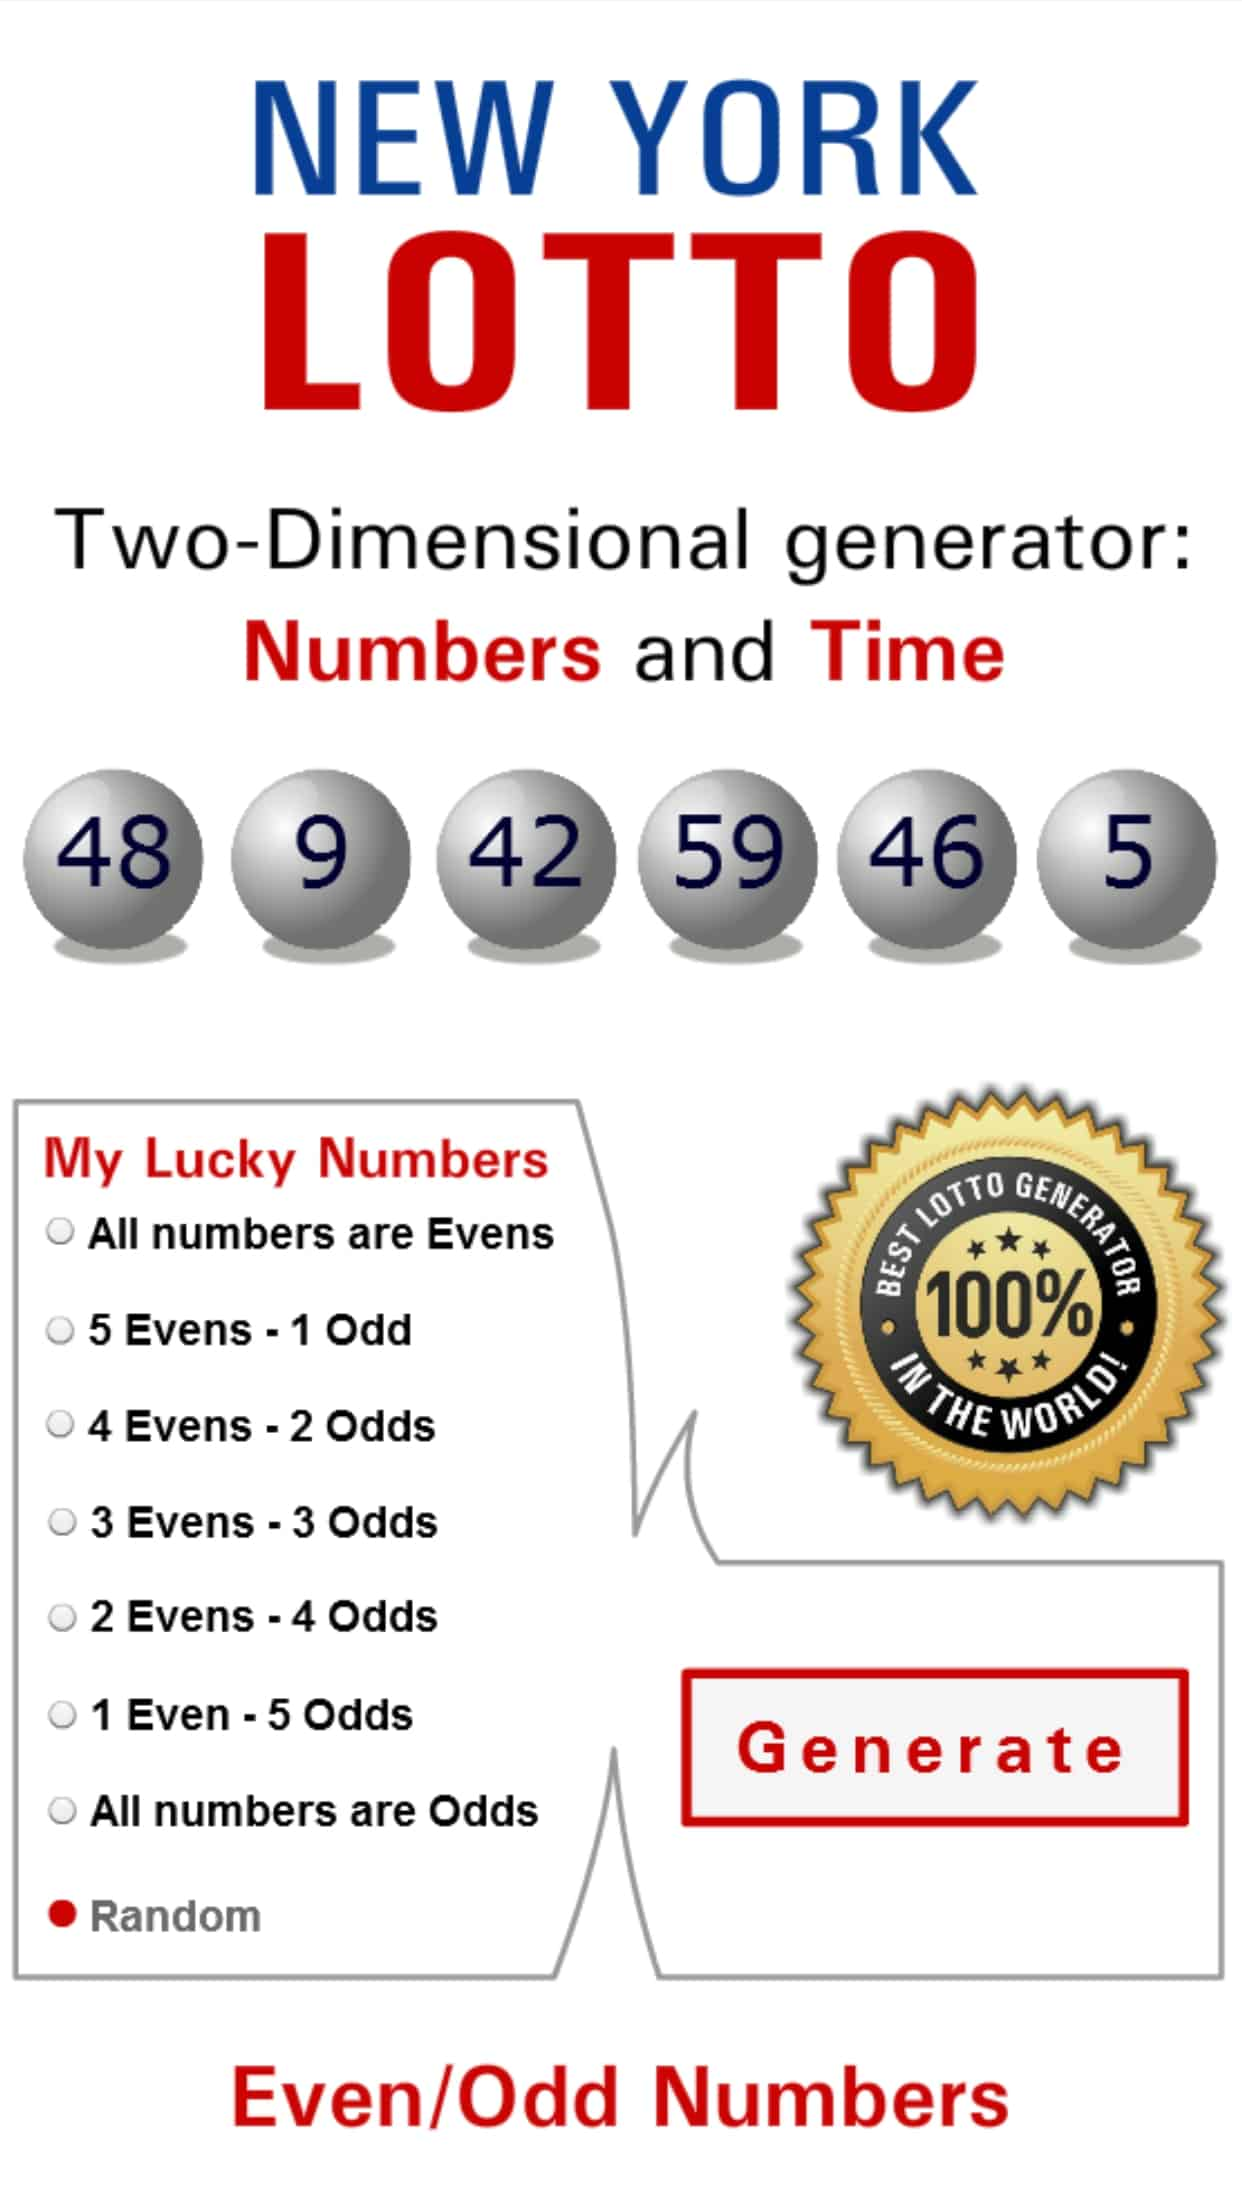 Six lucky numbers for lotto